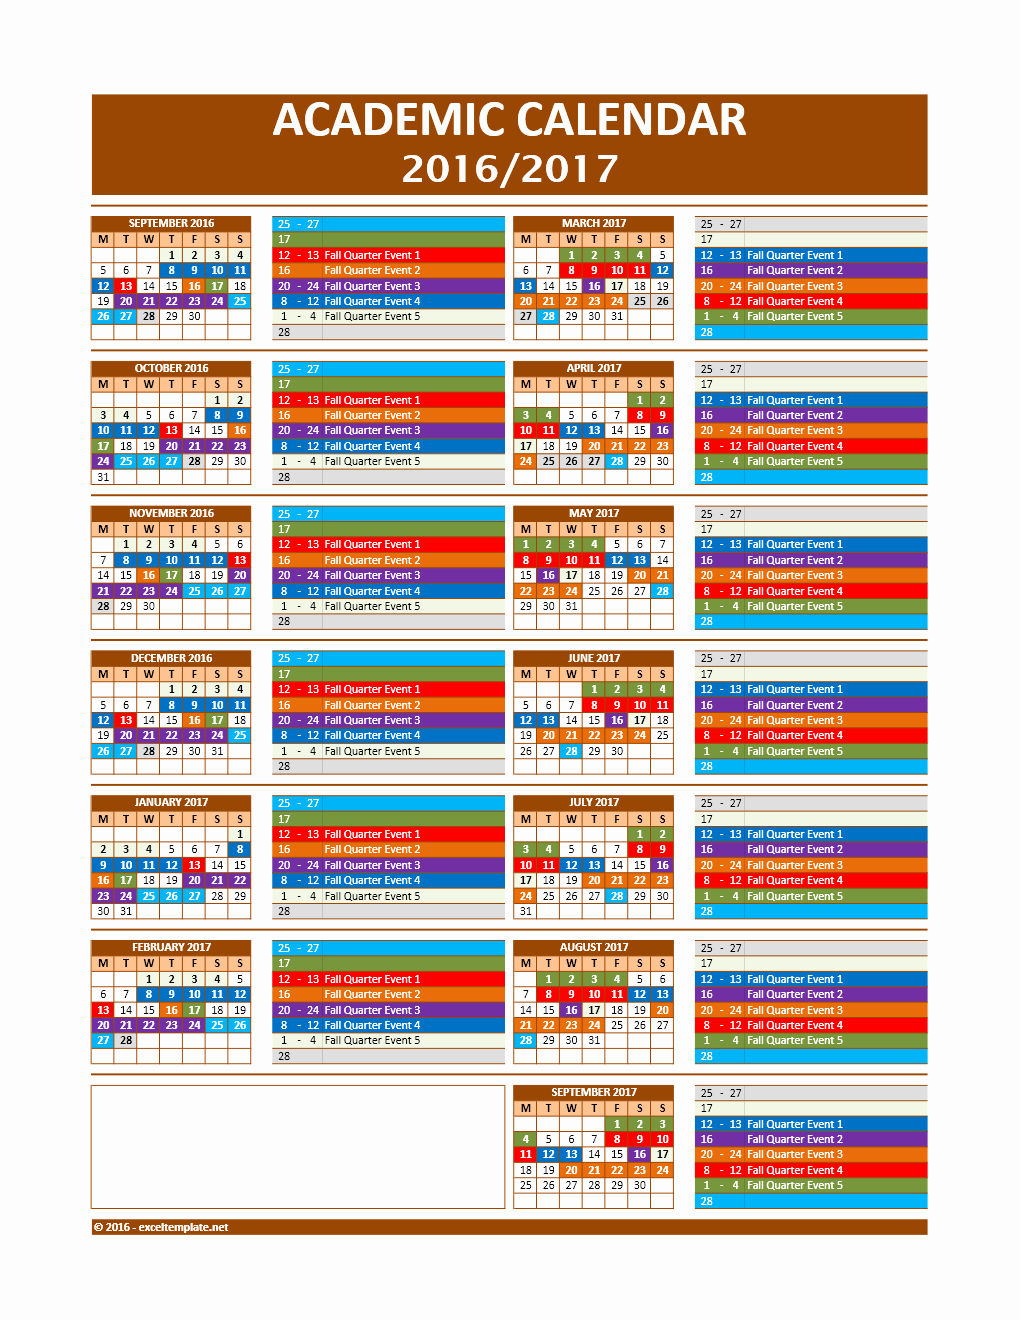 2016 2017 School Calendar Template Inspirational 2017 2018 and 2016 2017 School Calendar Templates